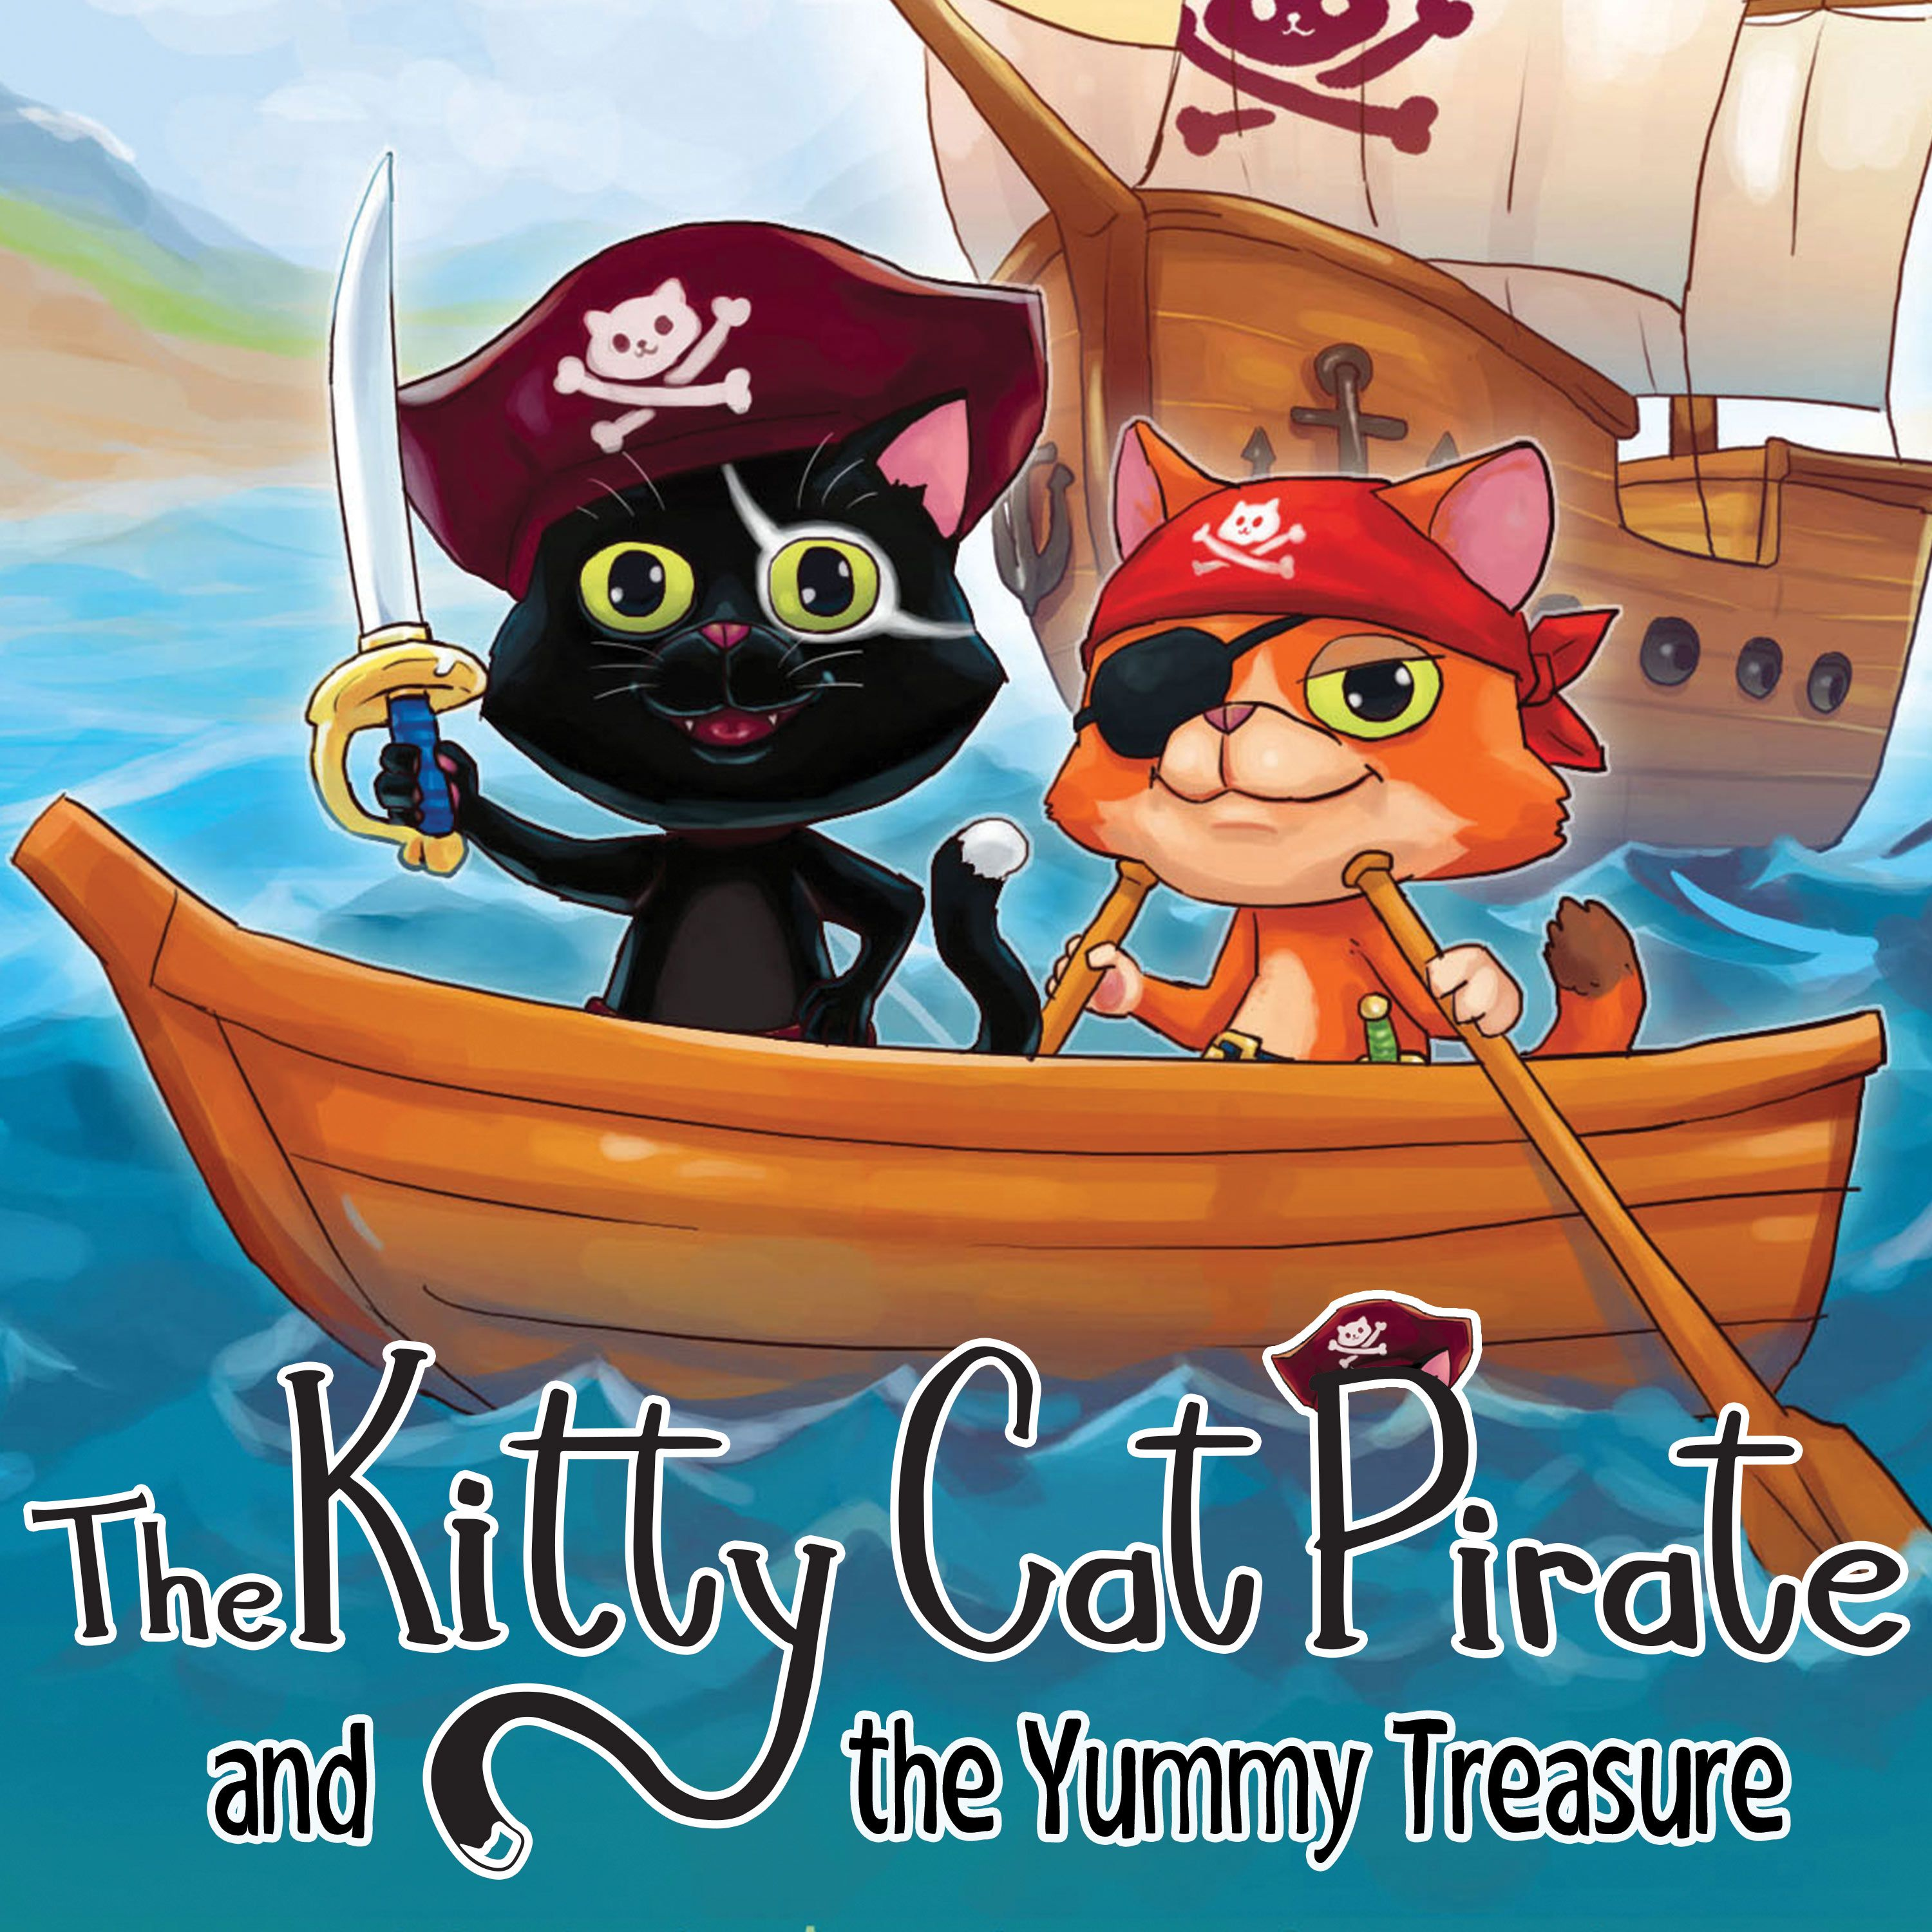 The Pirate Kitty Cat single is now live on Google Music